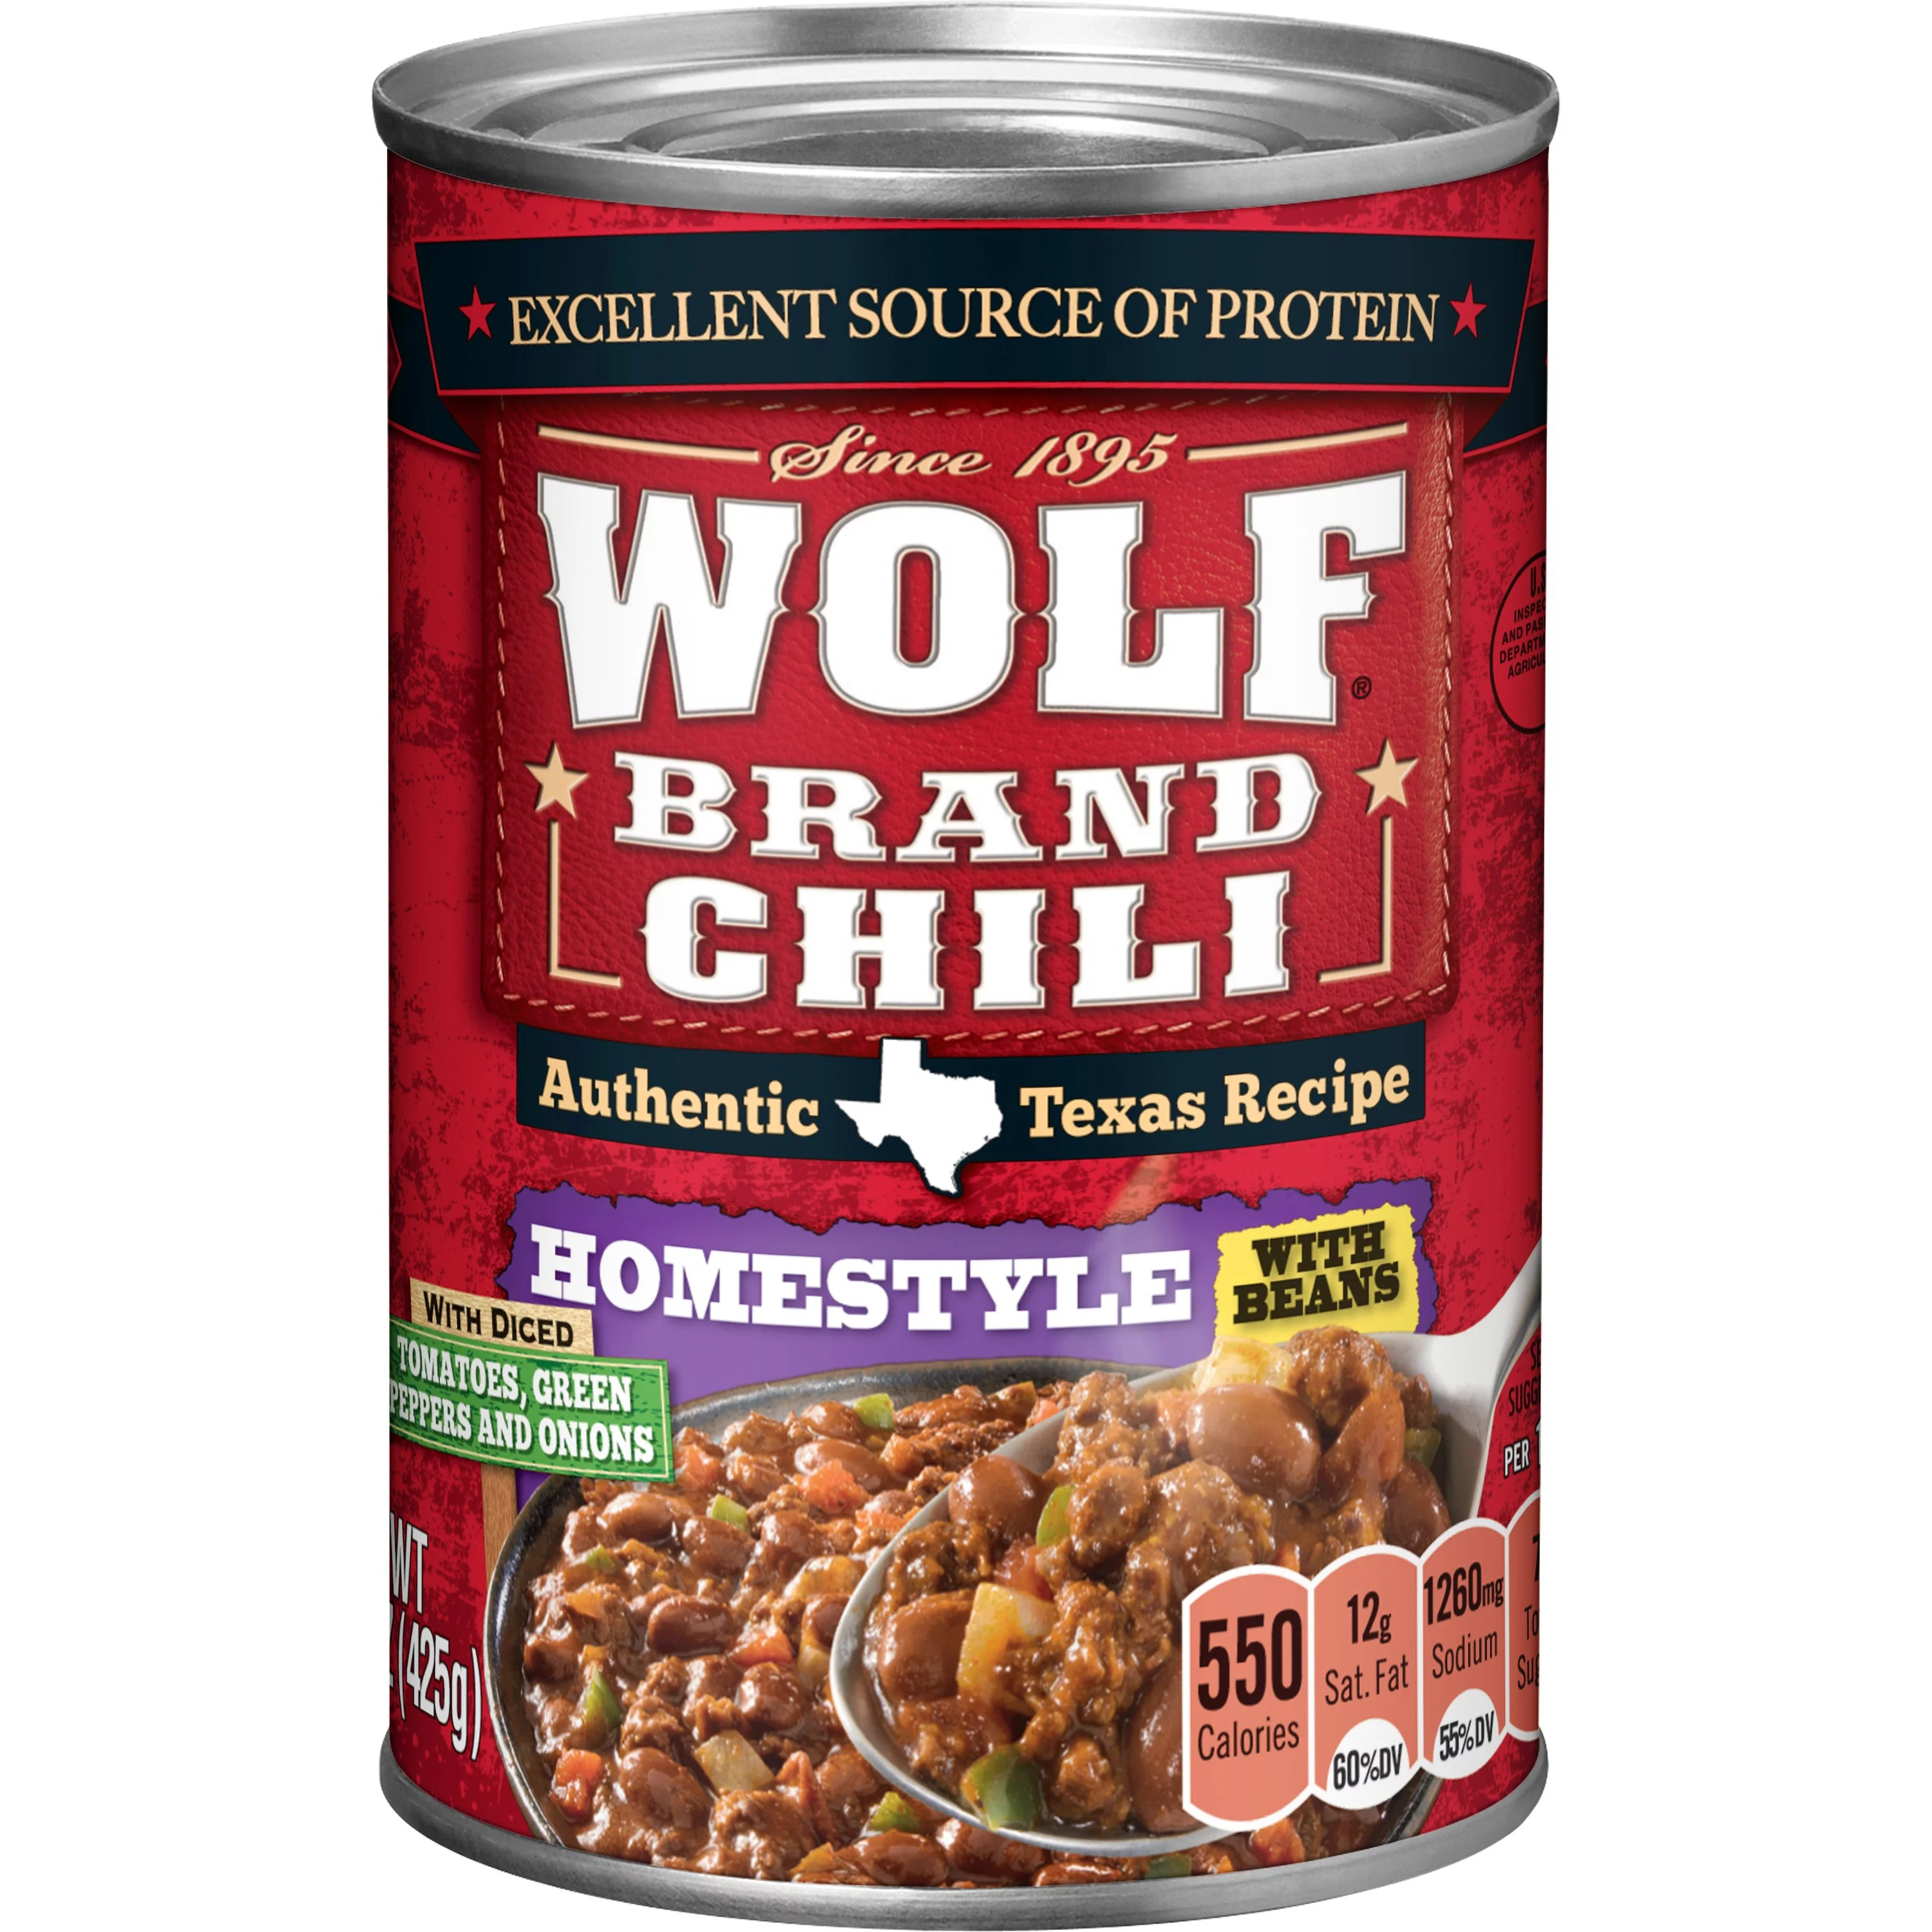 WOLF BRAND Spicy Chili With Beans Zesty Green Chilies